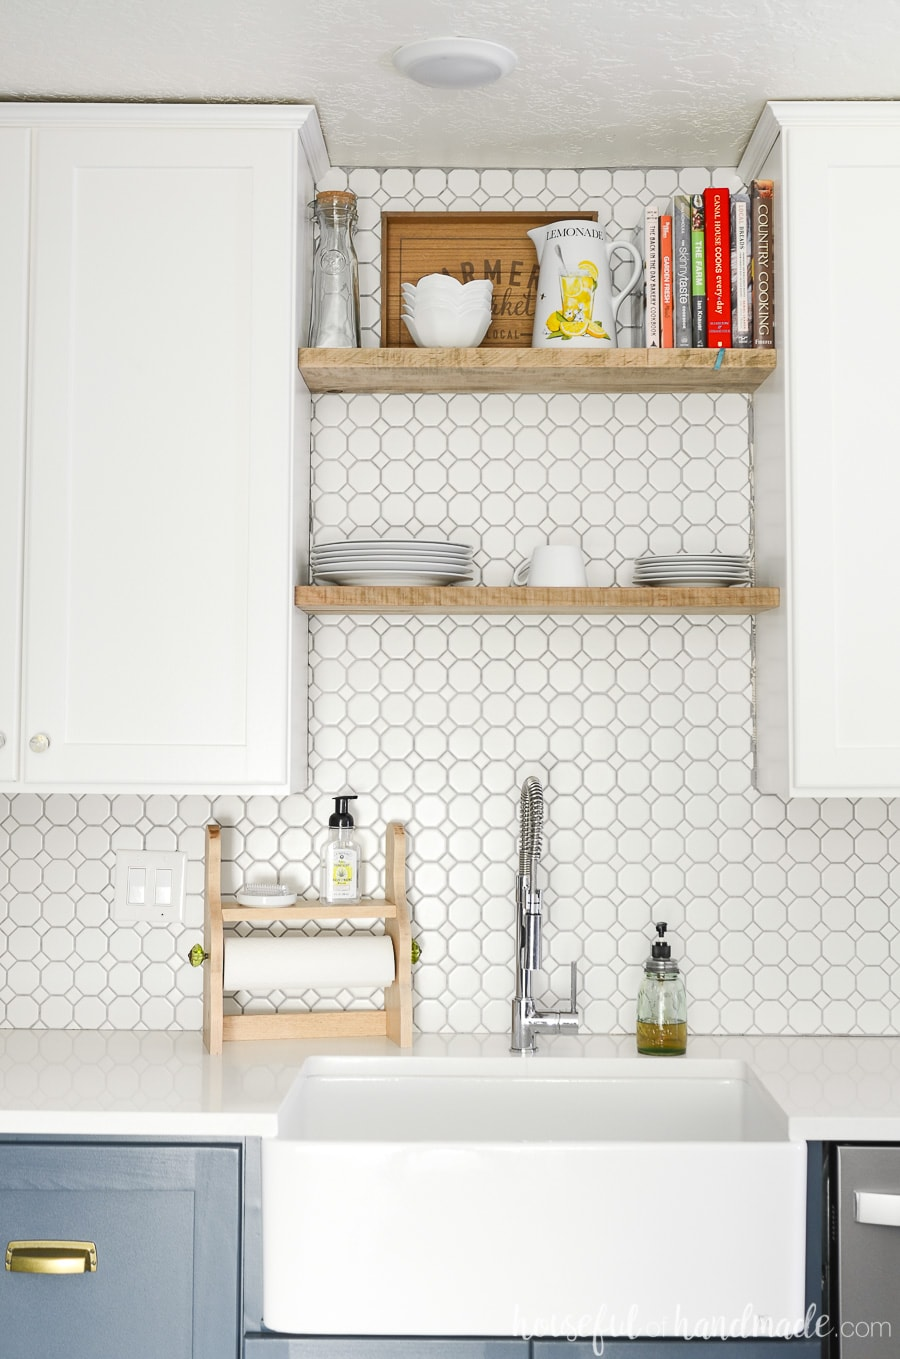 Large farmhouse sink in a kitchen with open shelving above the sink and white octagon tile backsplash.